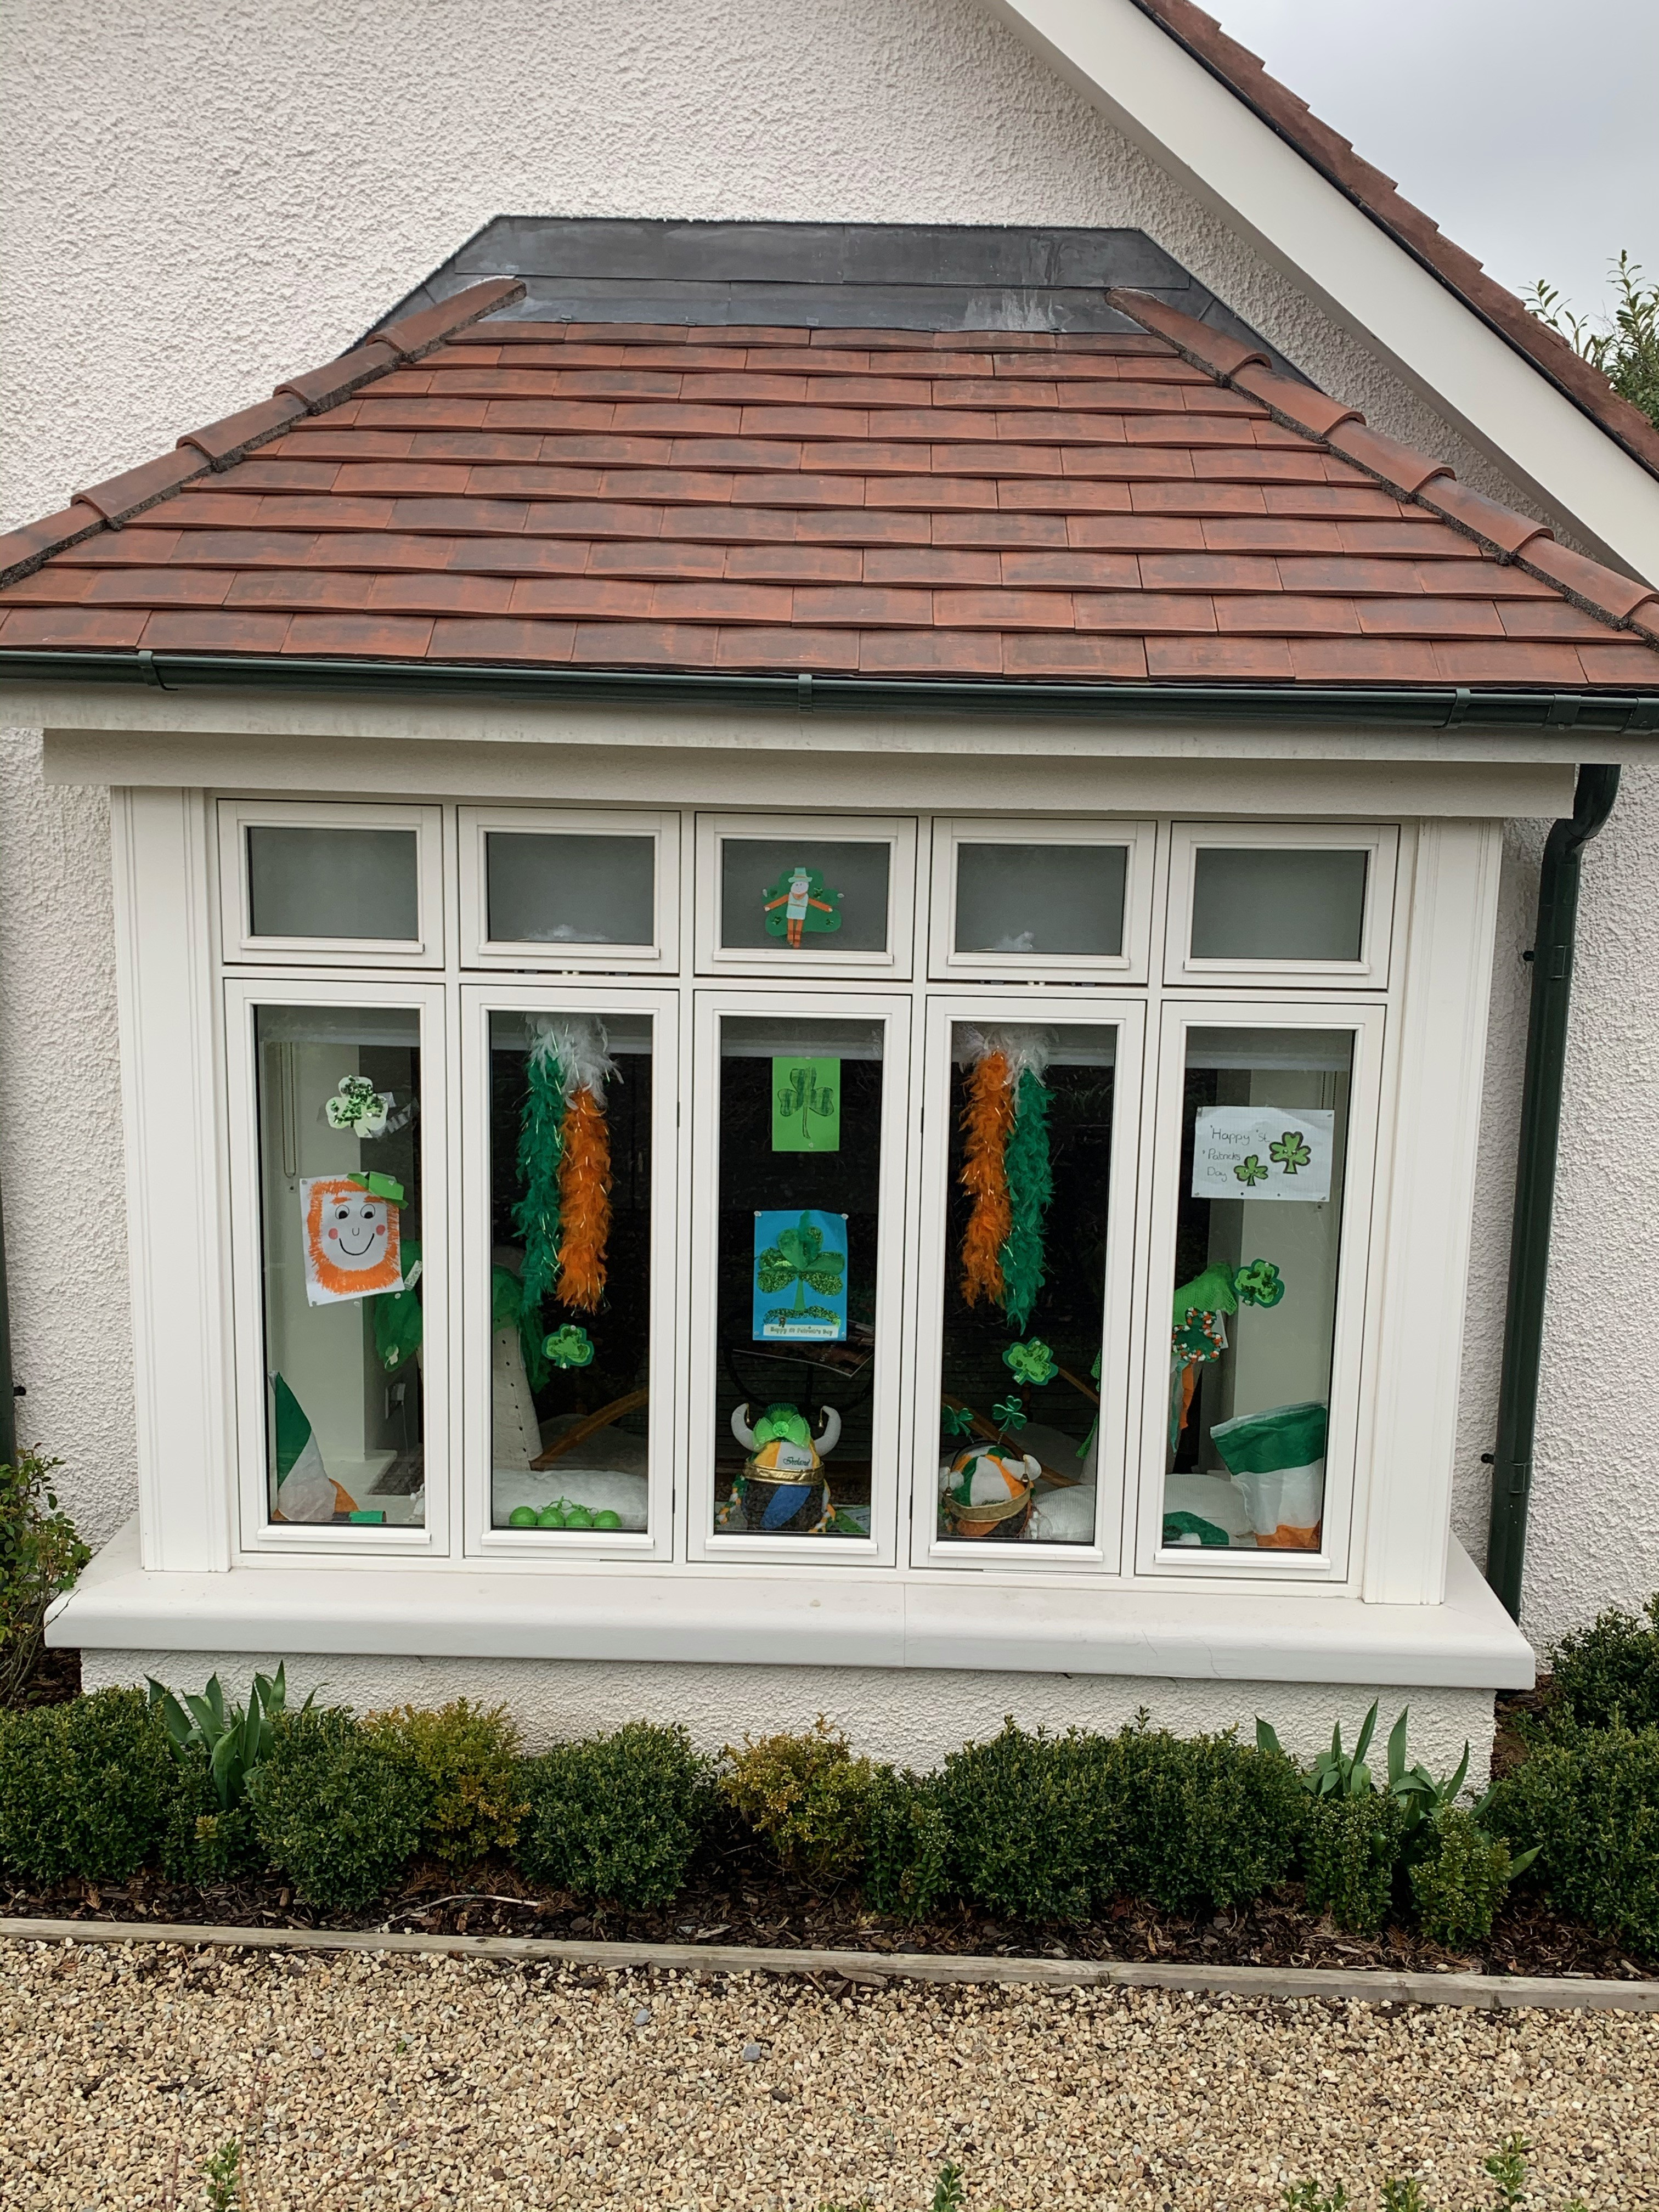 Here is the photo of our St Patrick's Day window to bring people cheer as they walk by our house.